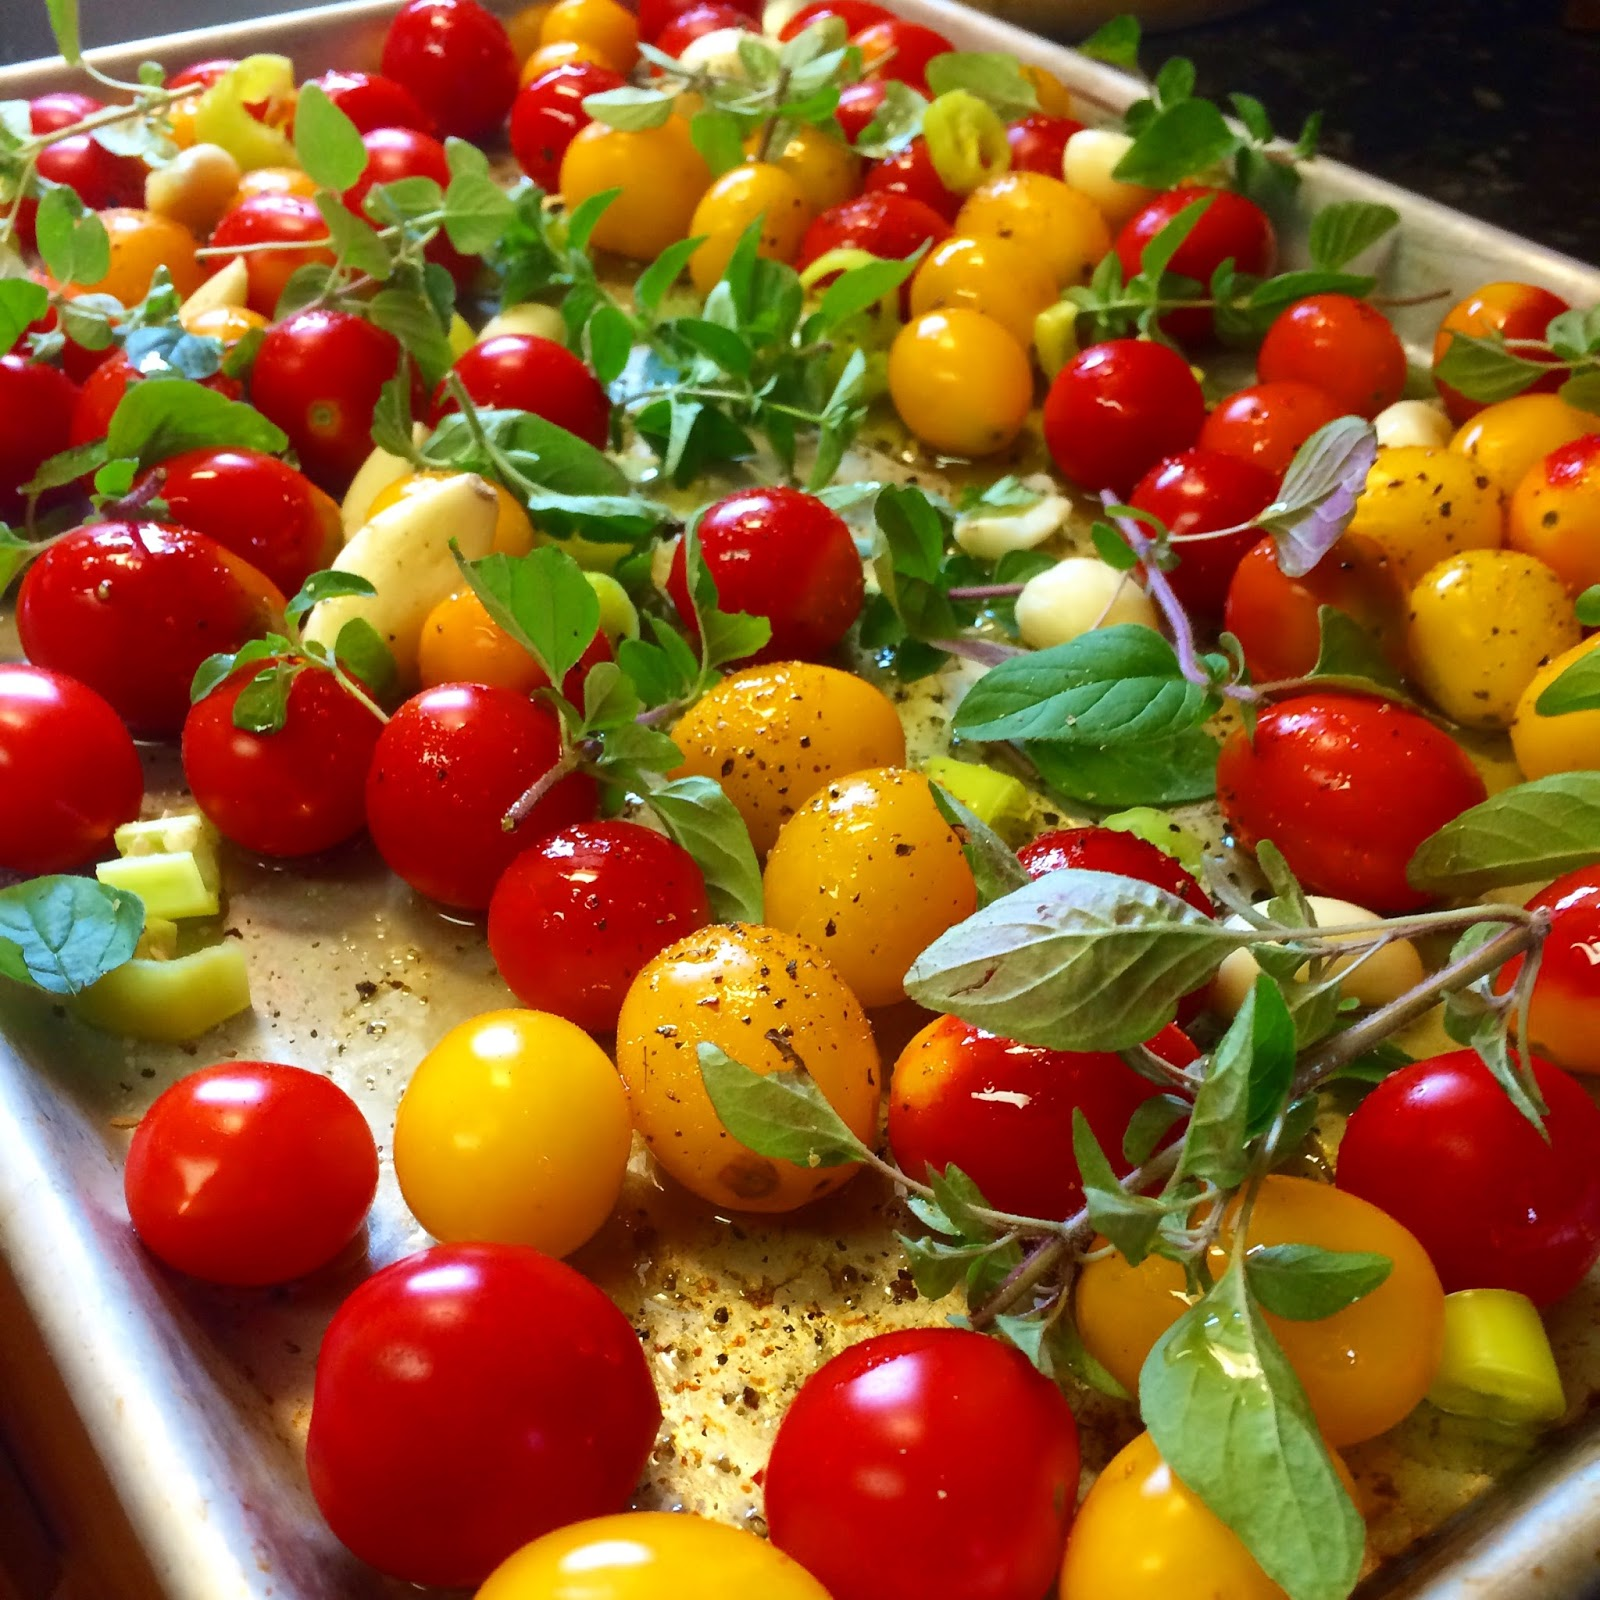 bonbons & biscotti: Slow Roasted Tomatoes and Herbs for ...